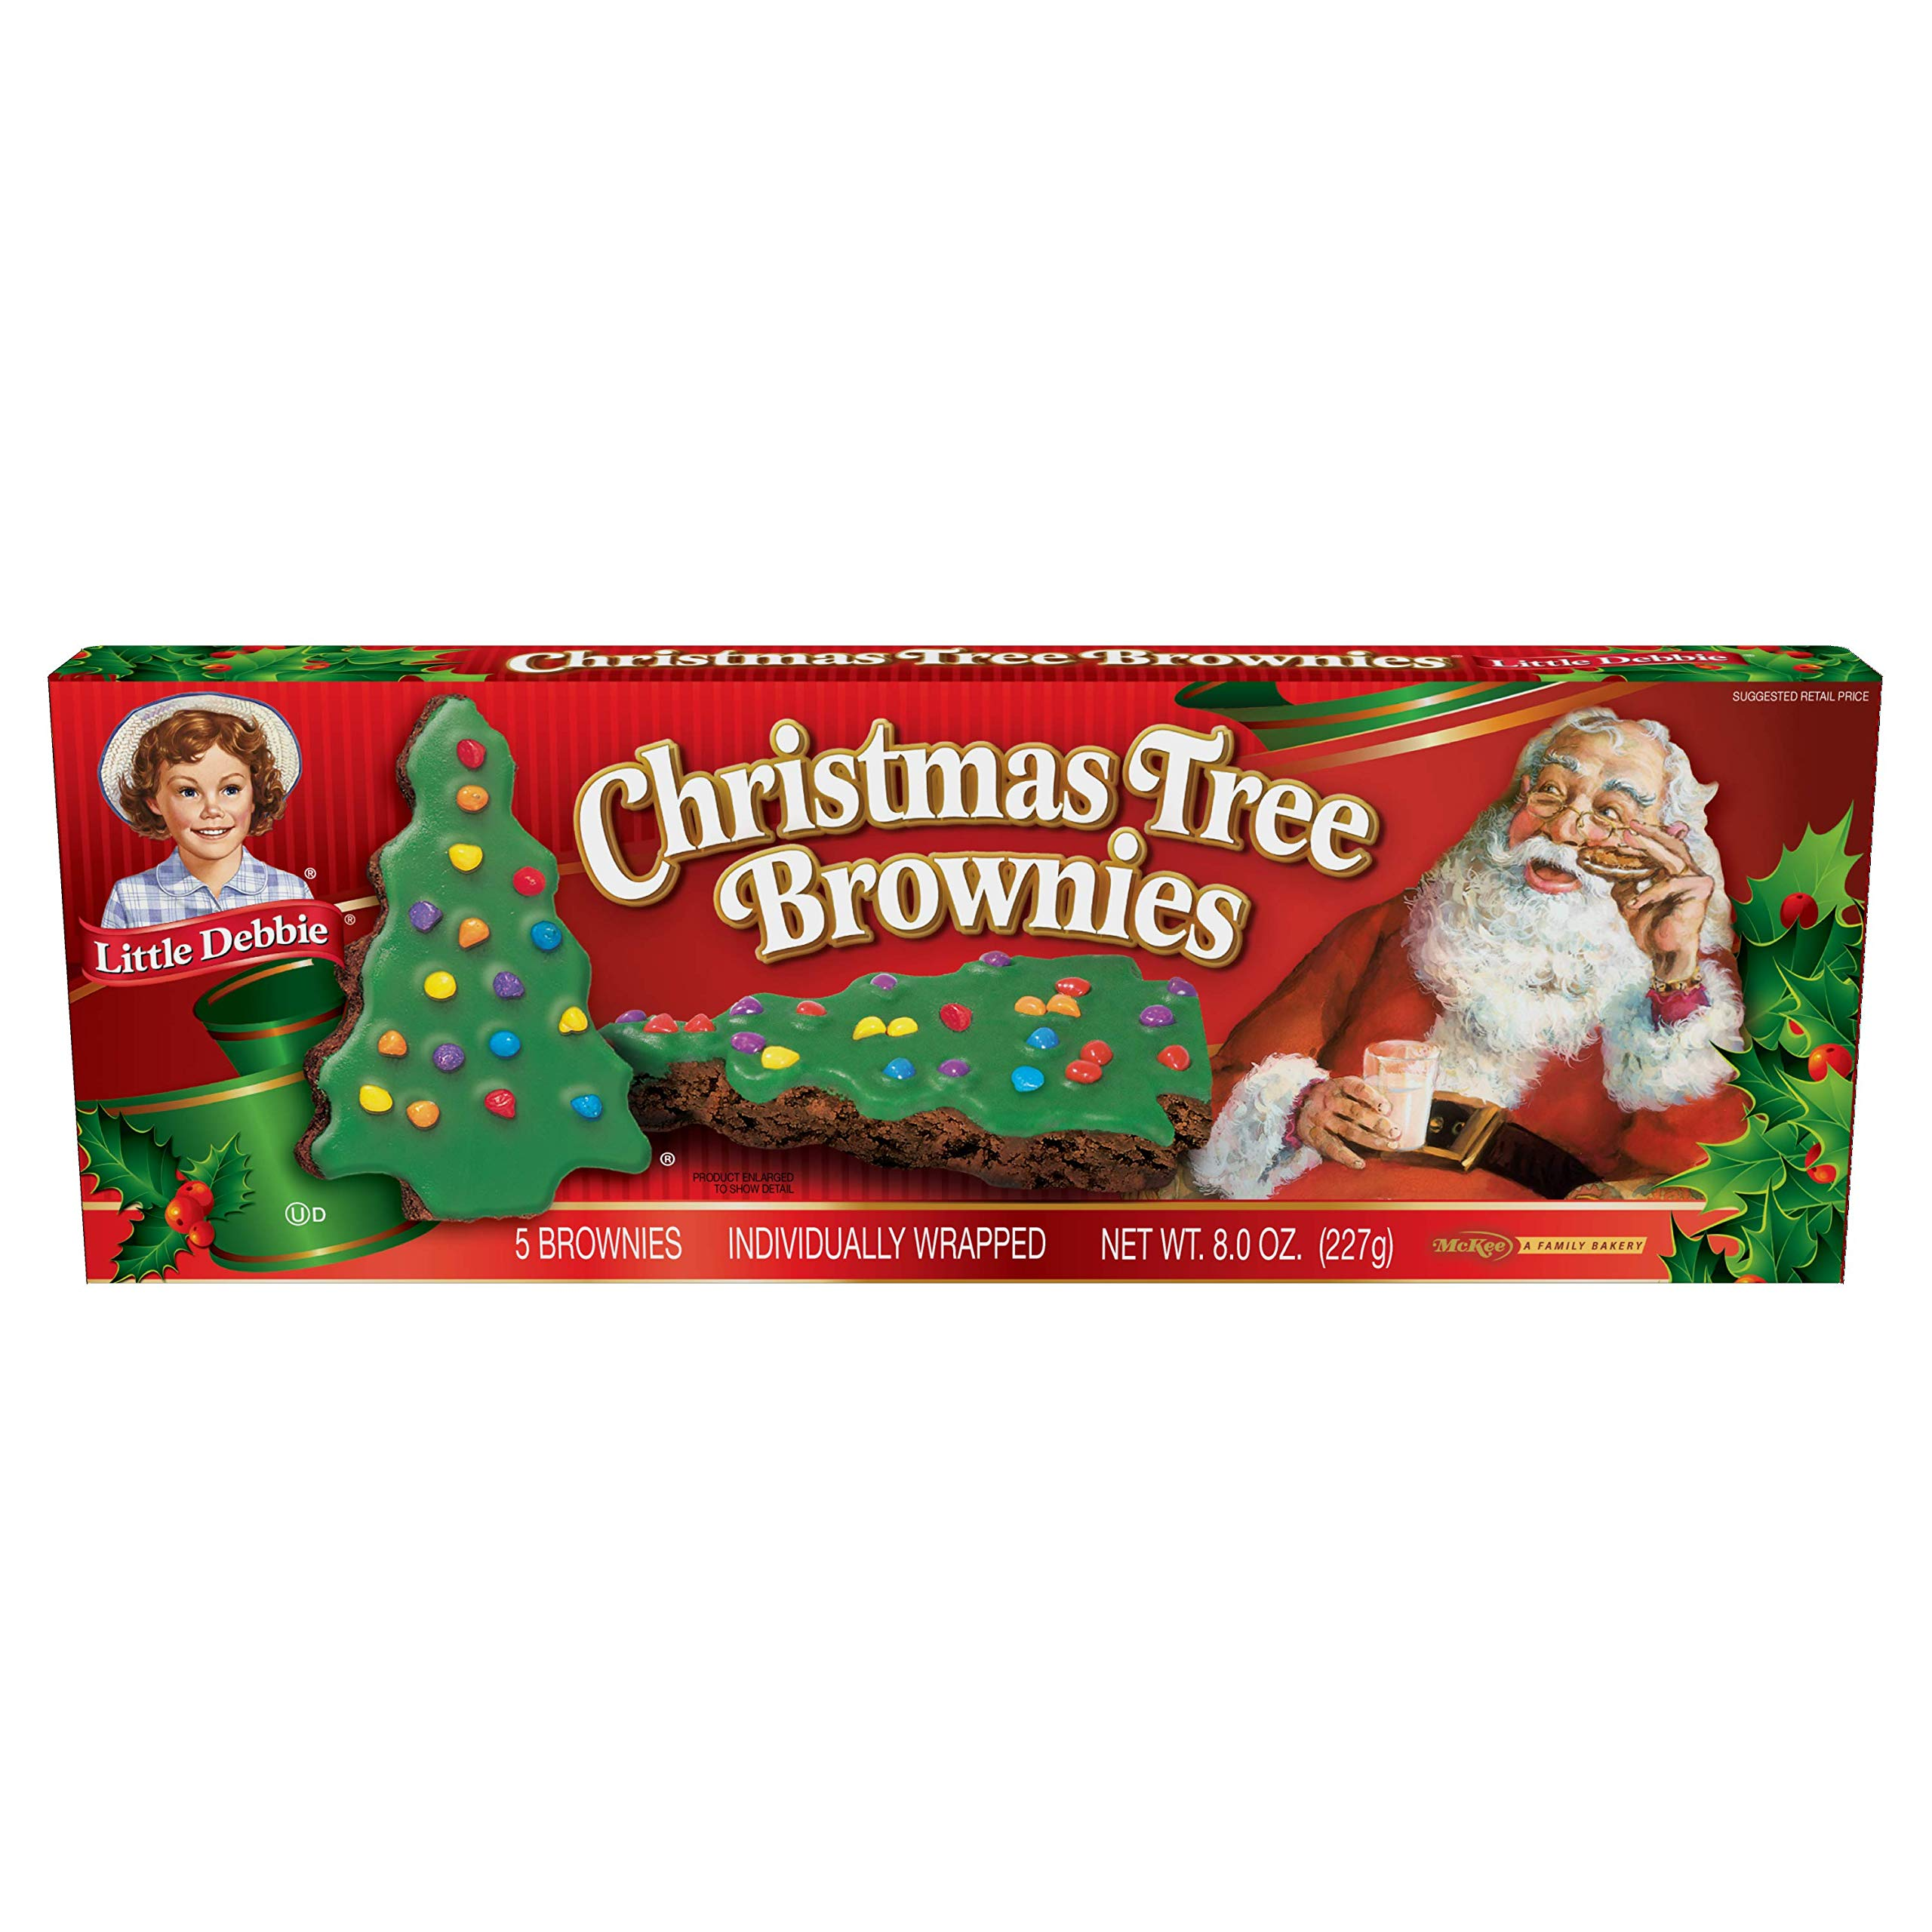 Little Debbie Christmas Tree Brownies Amazon Grocery & Gourmet